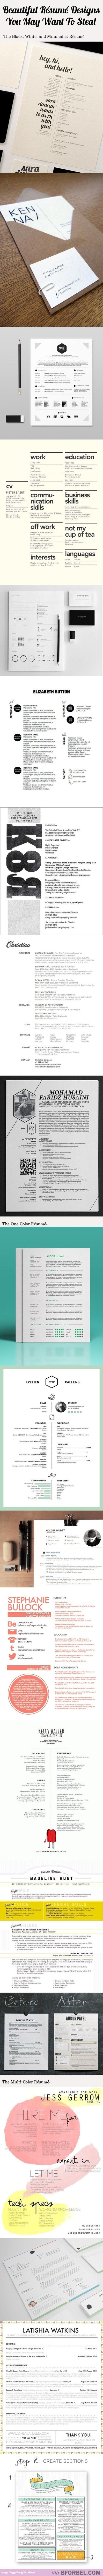 20 Beautiful Resume Designs You May Want To Stealu2026